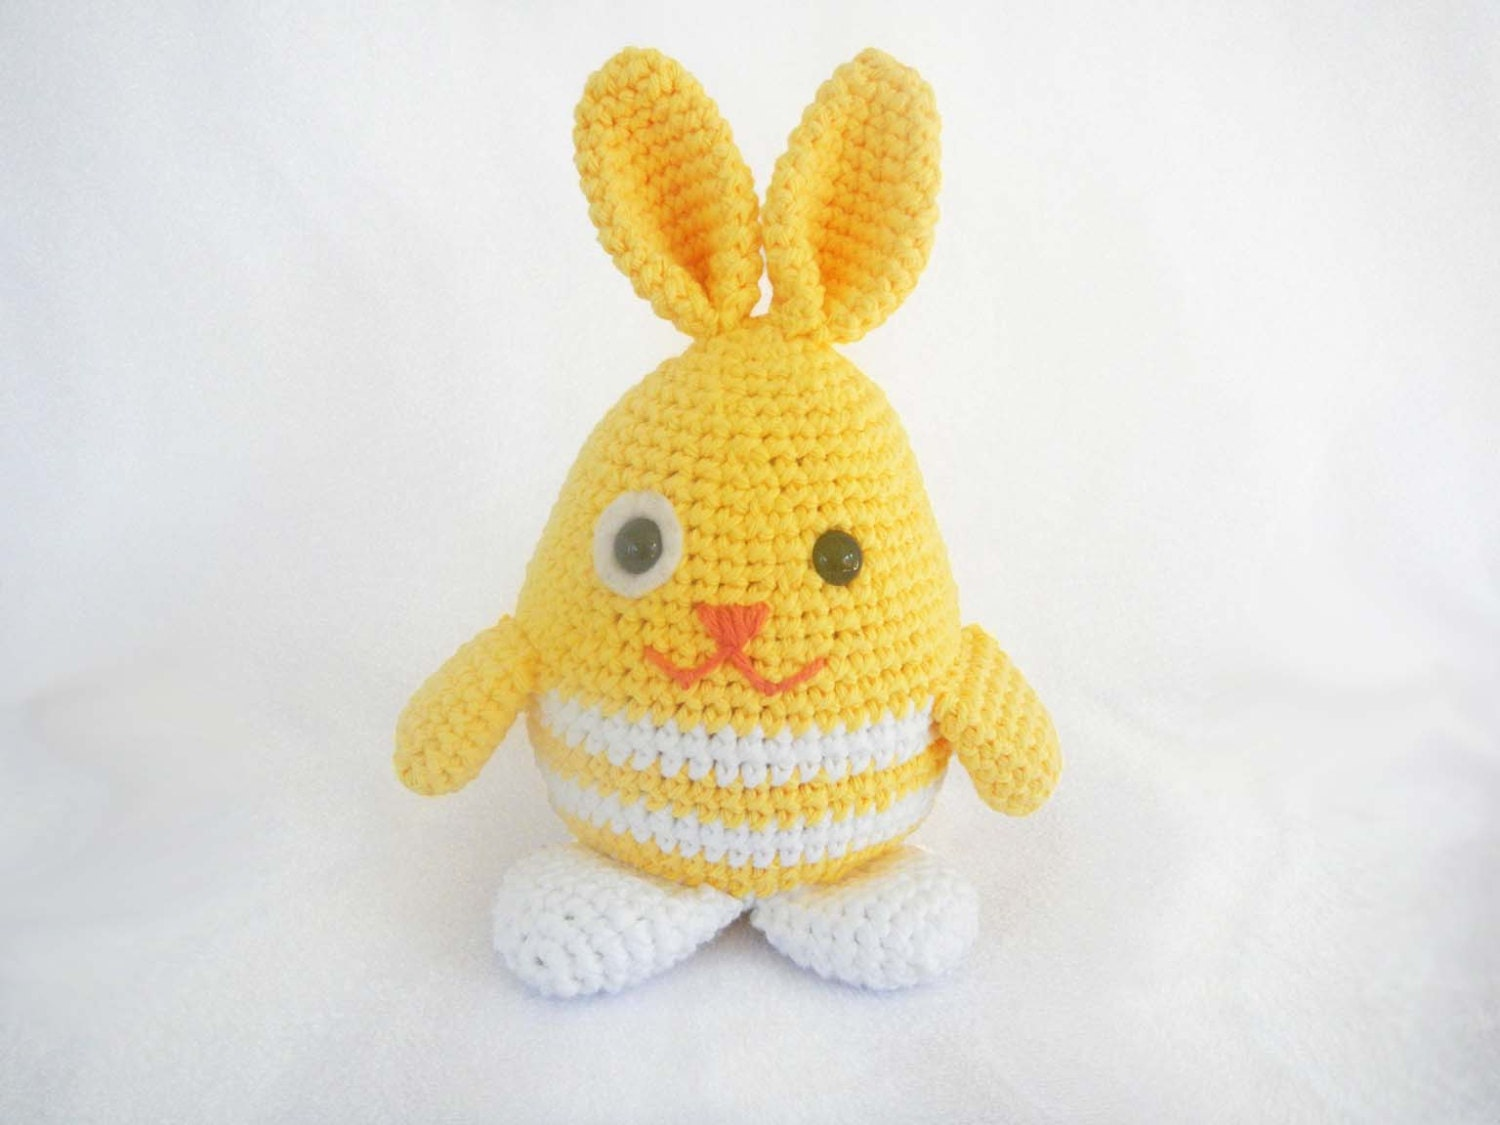 Amigurumi Easter Bunny : Easter Bunny Crochet Pattern Easy Amigurumi Pattern for